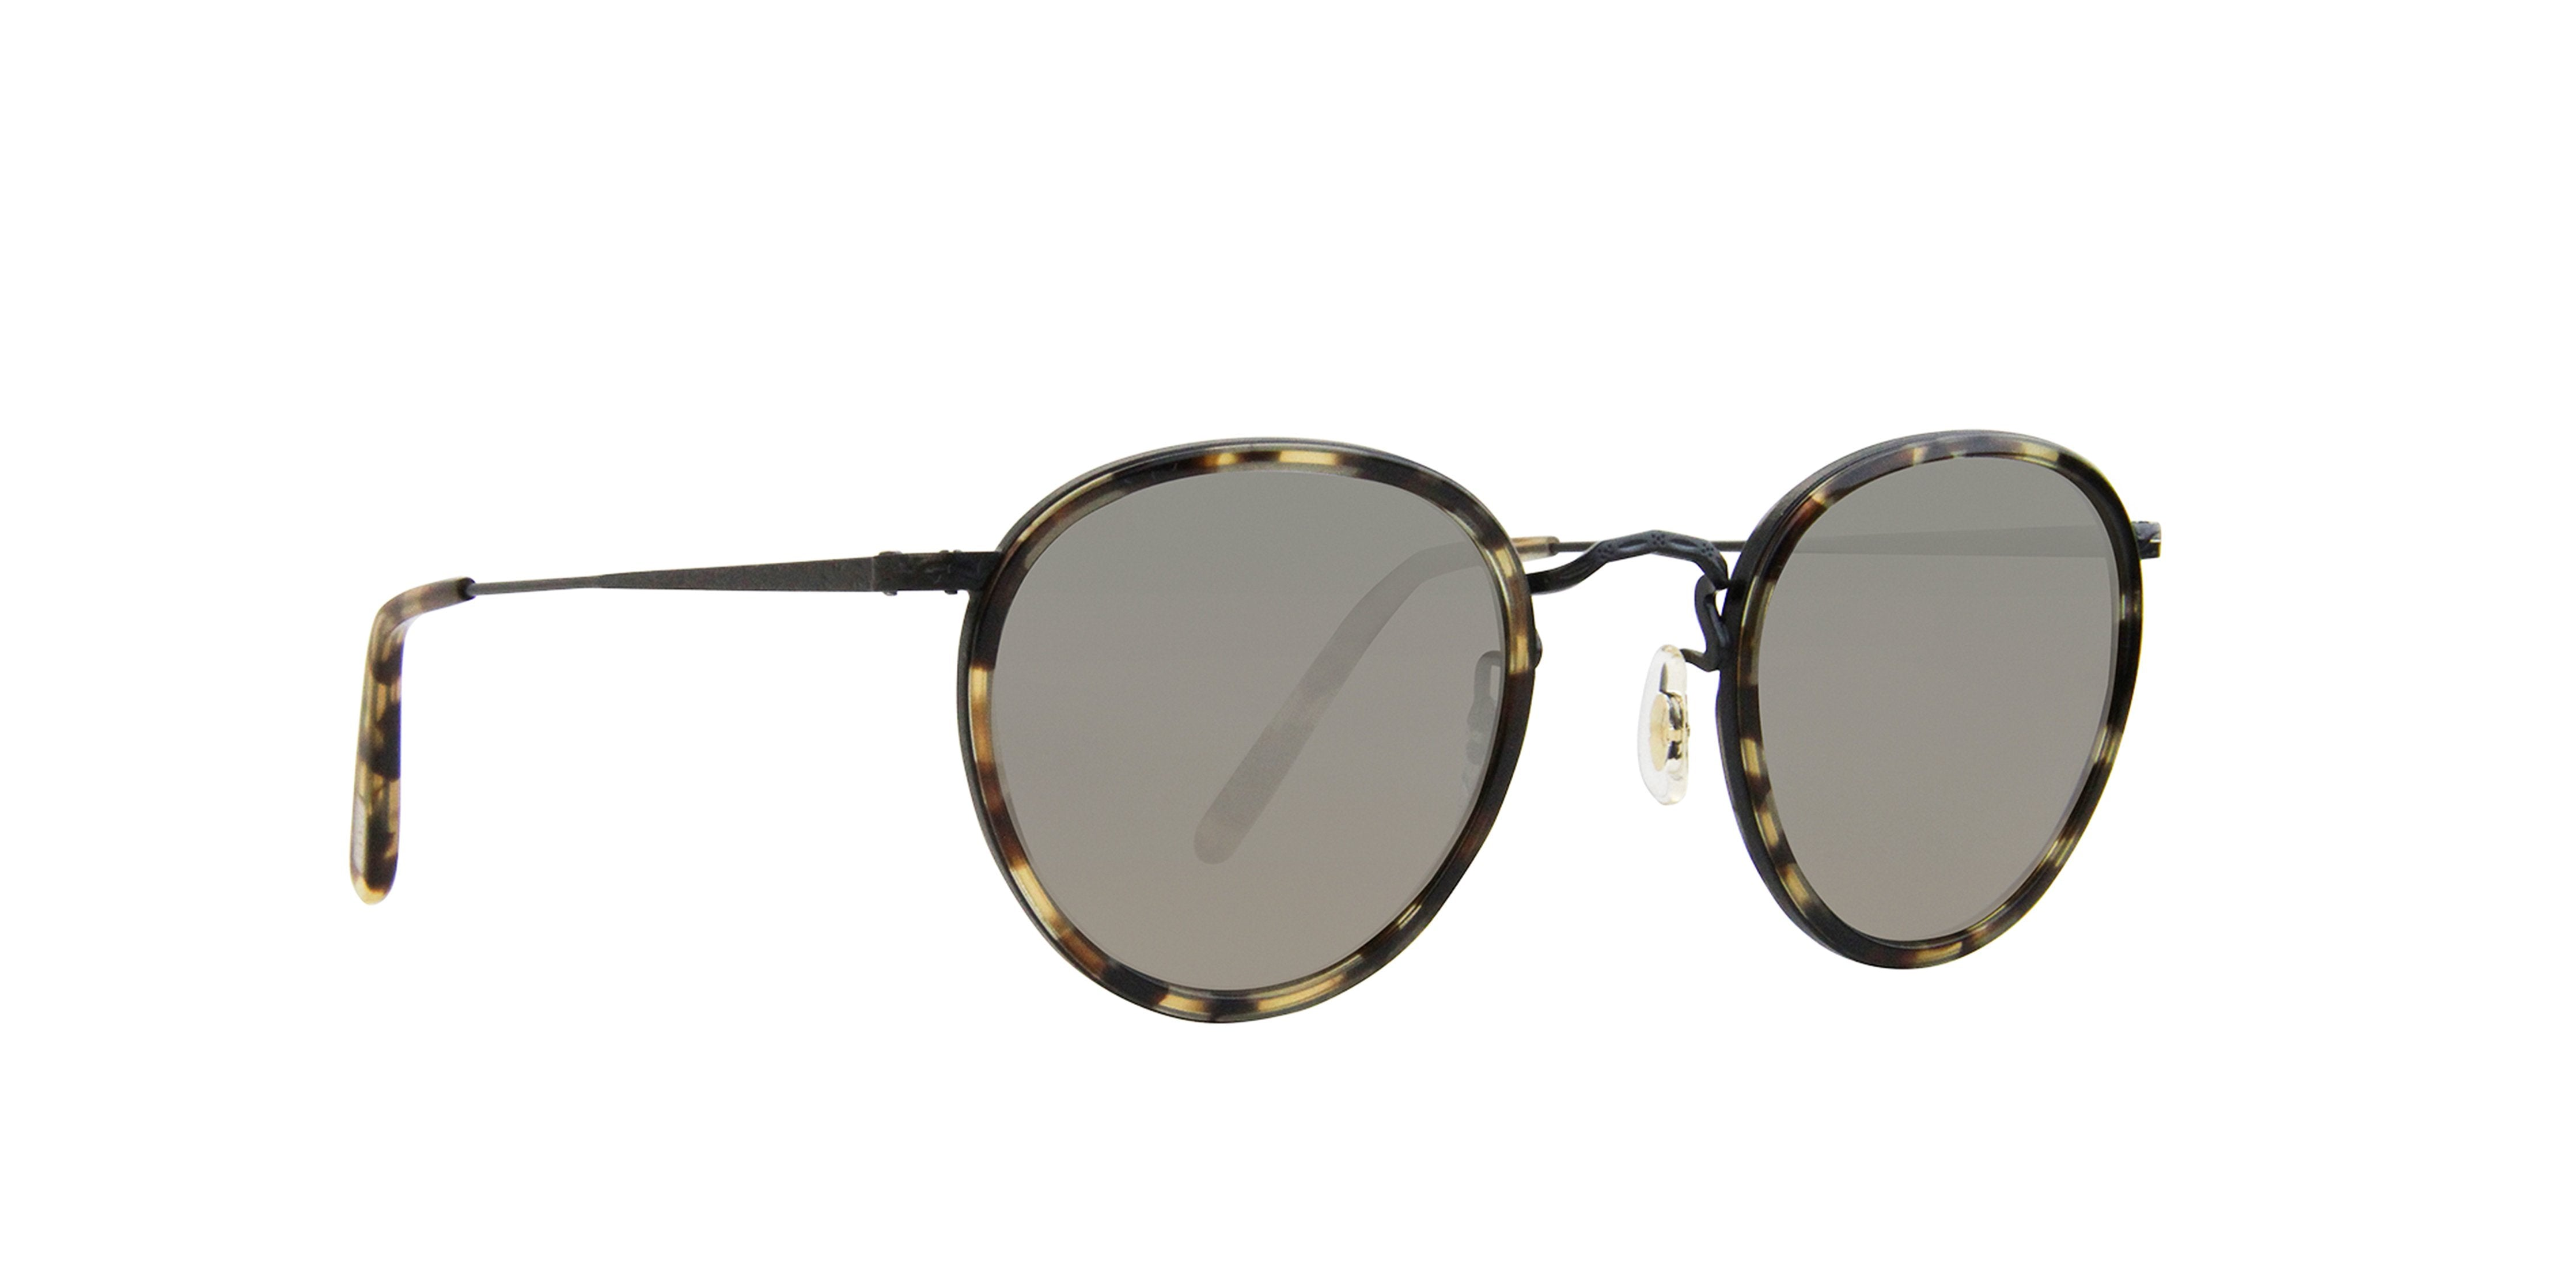 Oliver Peoples - MP-2 Tortoise Oval Unisex Sunglasses - 48mm-Sunglasses-Designer Eyes